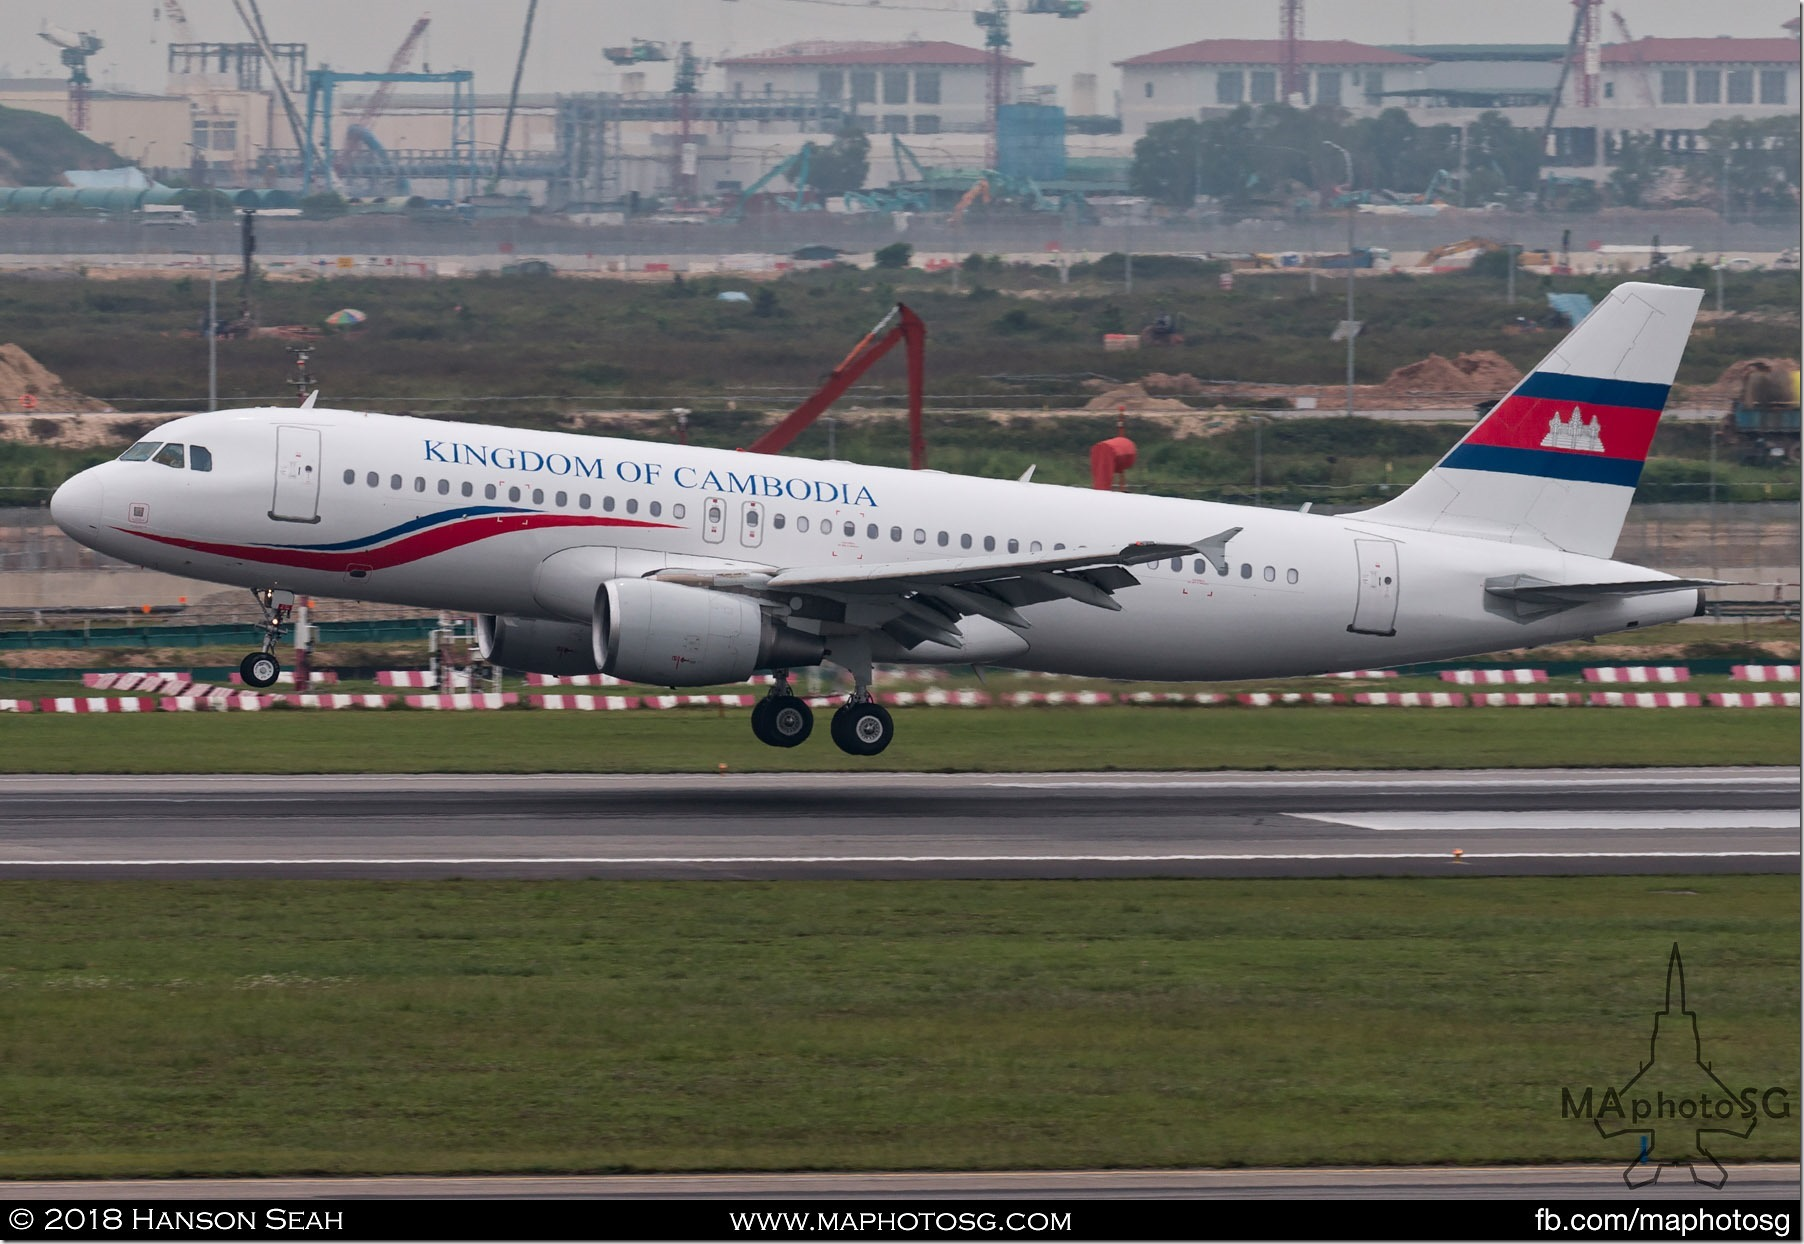 08. Kingdom of Cambodia Airbus A320